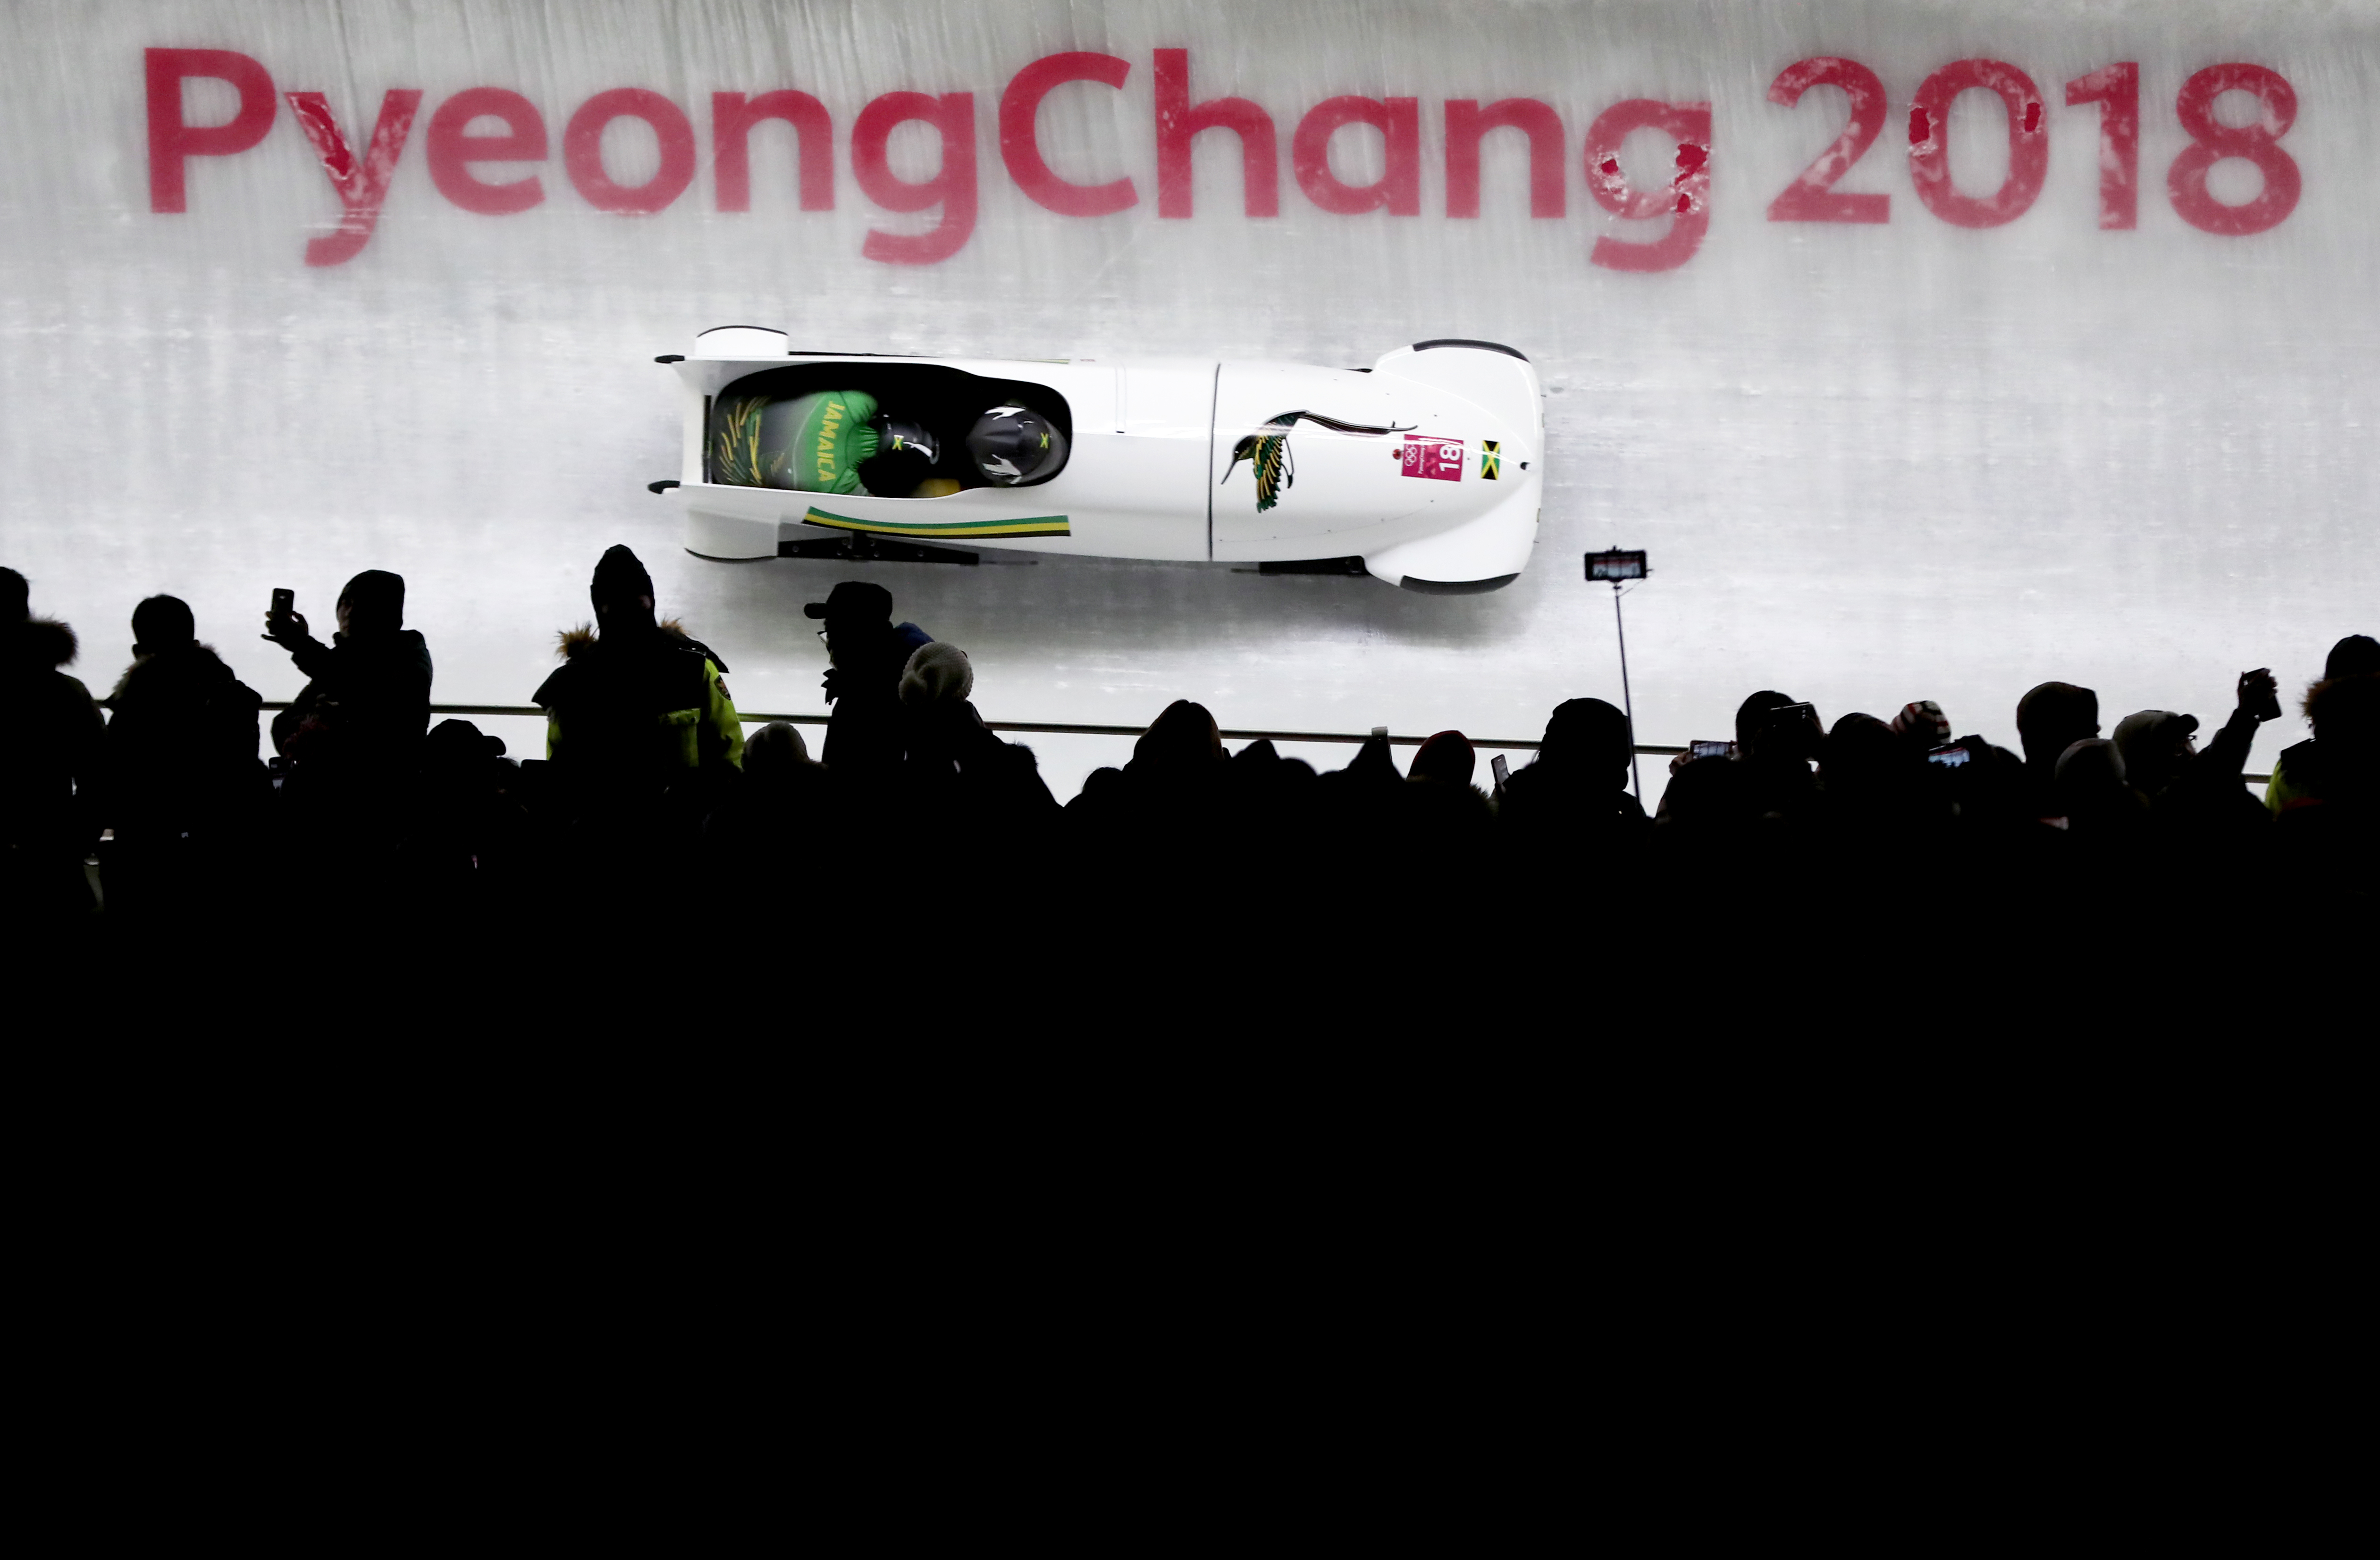 Jamaica in action during the two-woman bobsleigh heat at the 2018 Winter Olympics in Pyeongchang